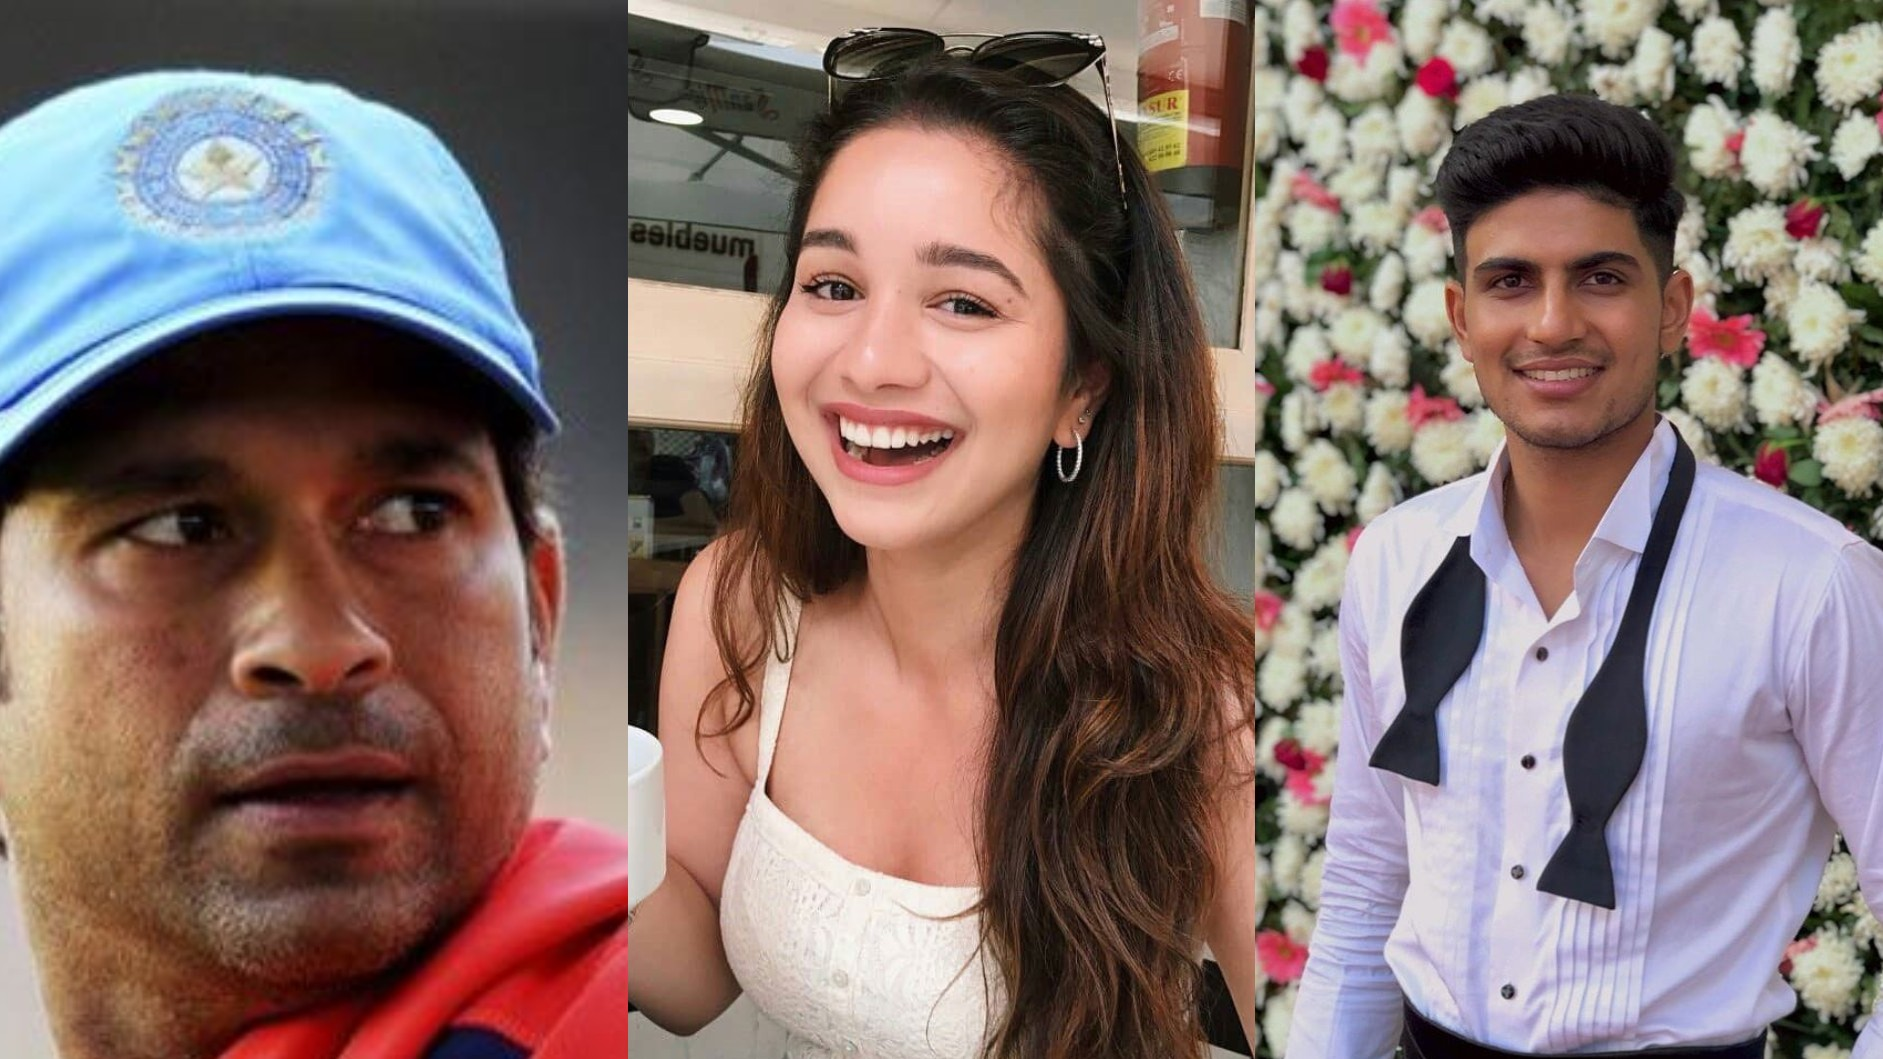 Google goofs up again! Search results show Sara Tendulkar as Shubman Gill's wife